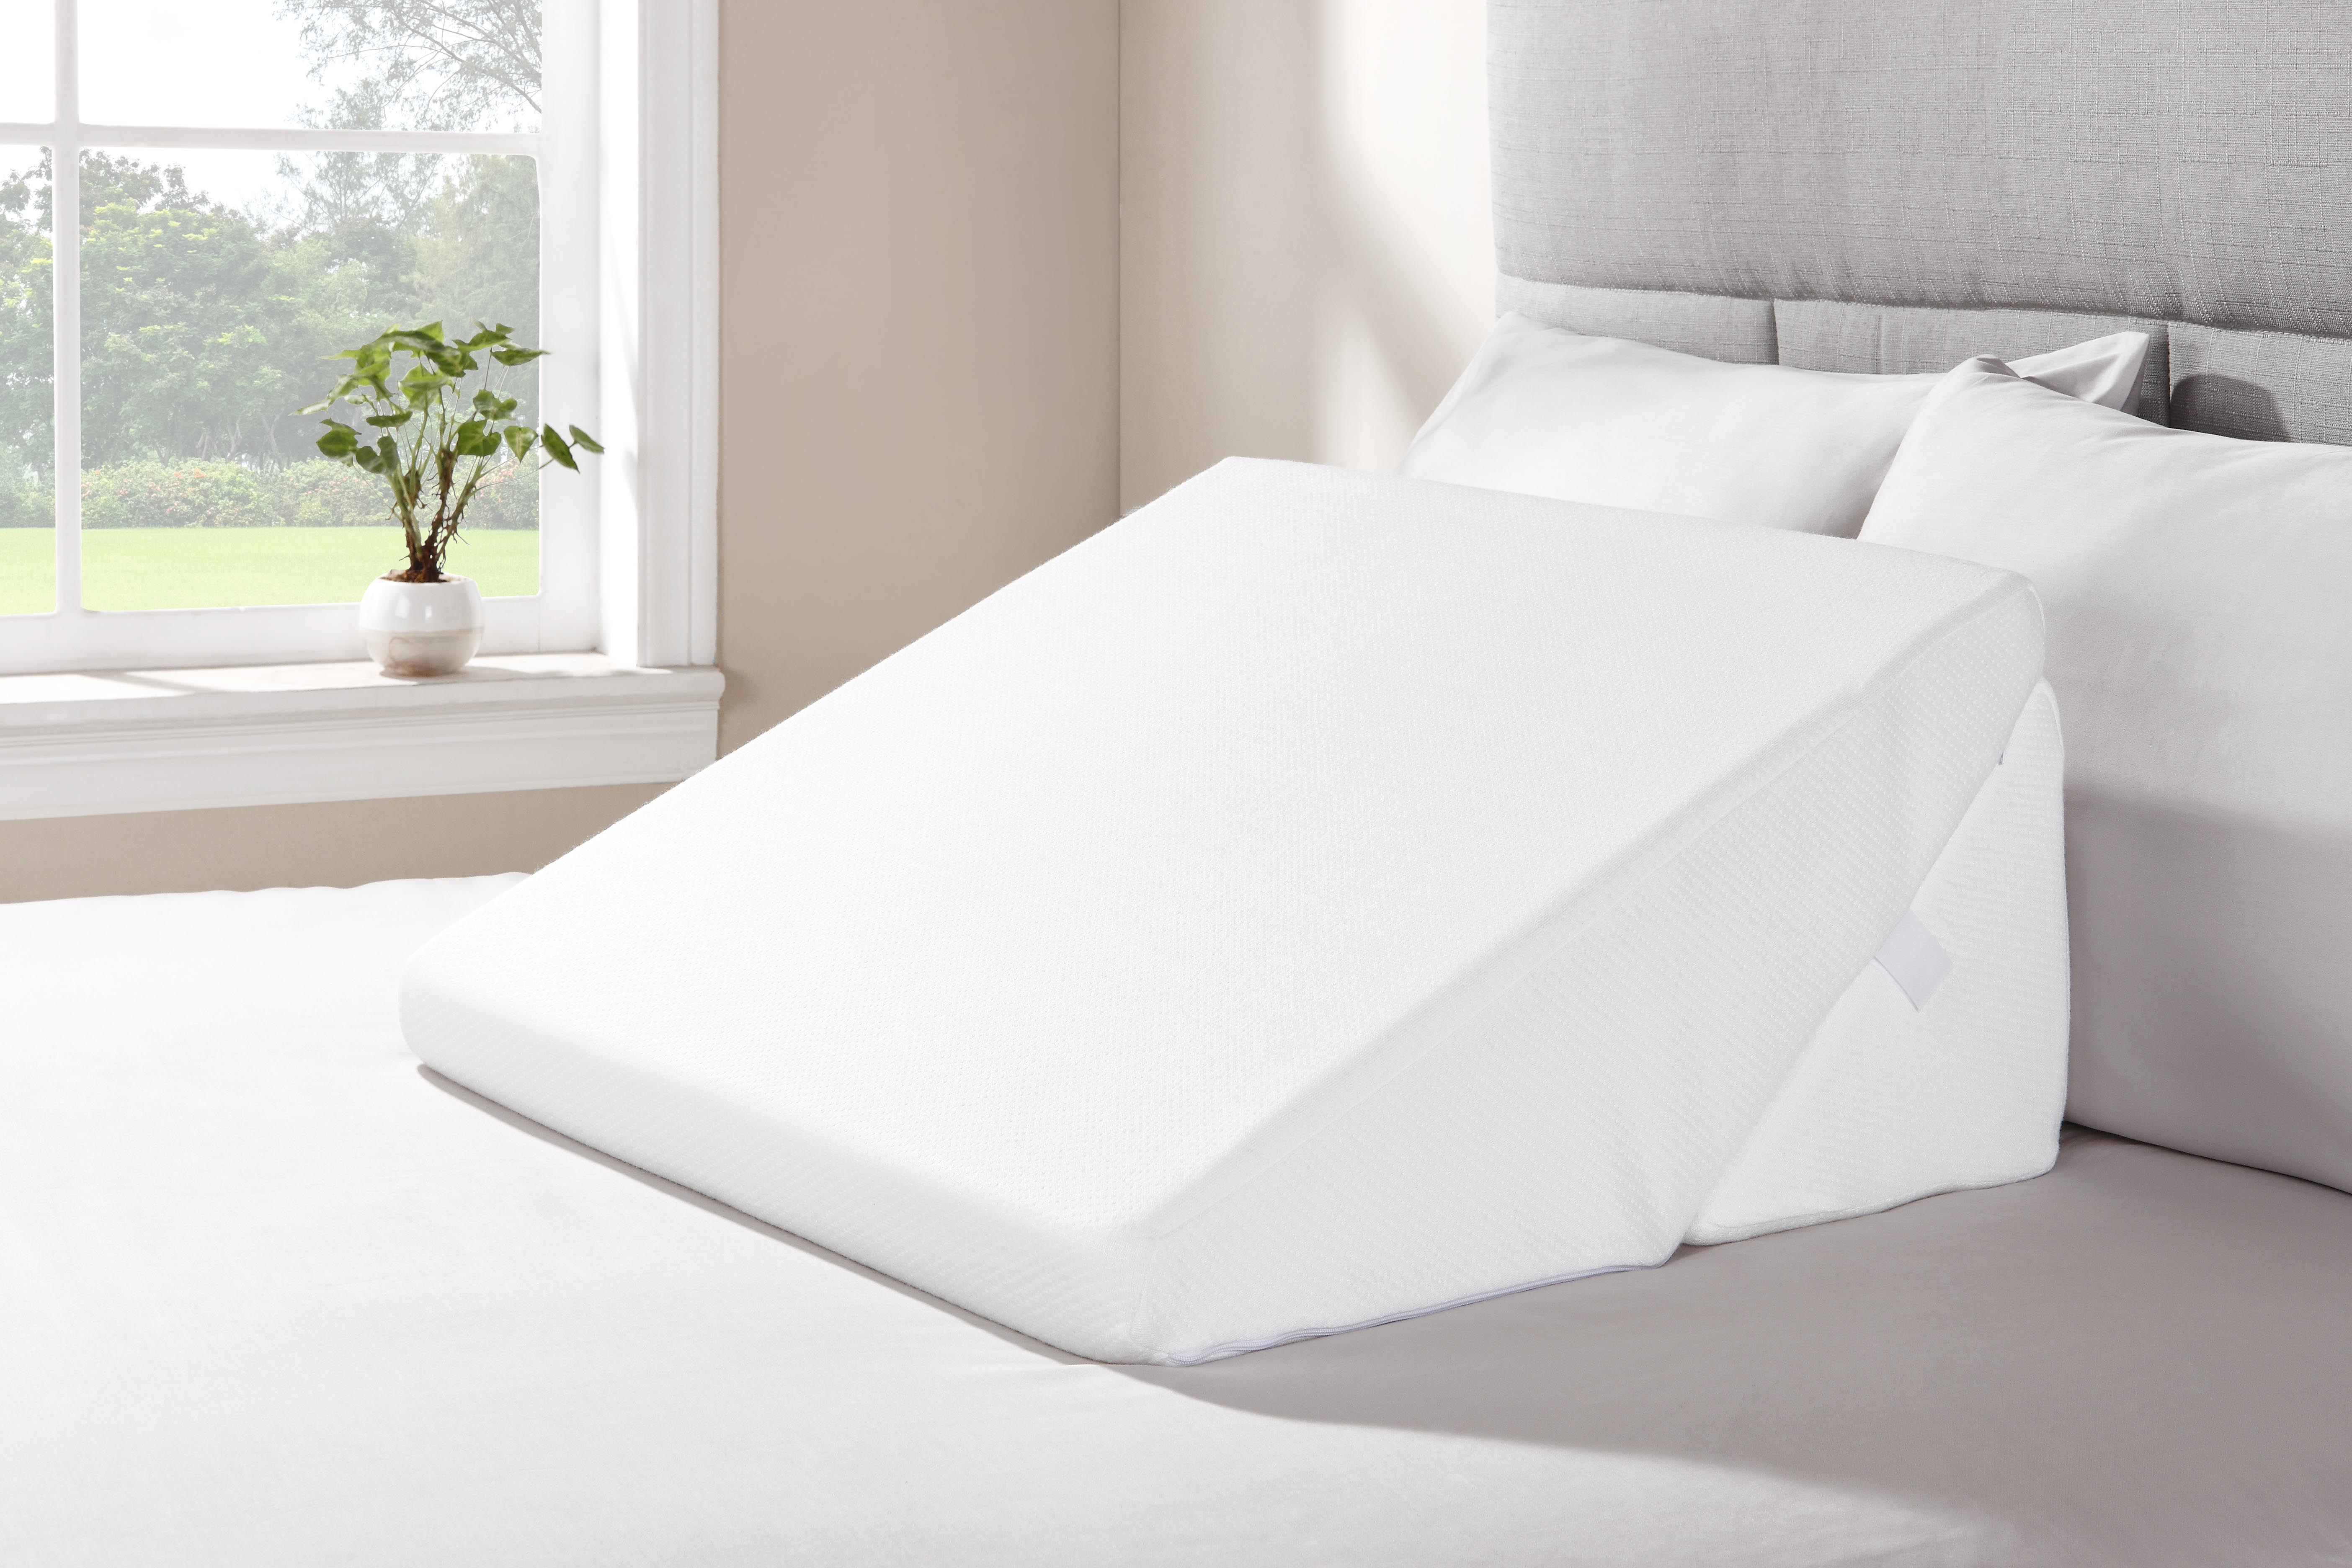 Image of: Wedge Pillow Bed Bath And Beyond